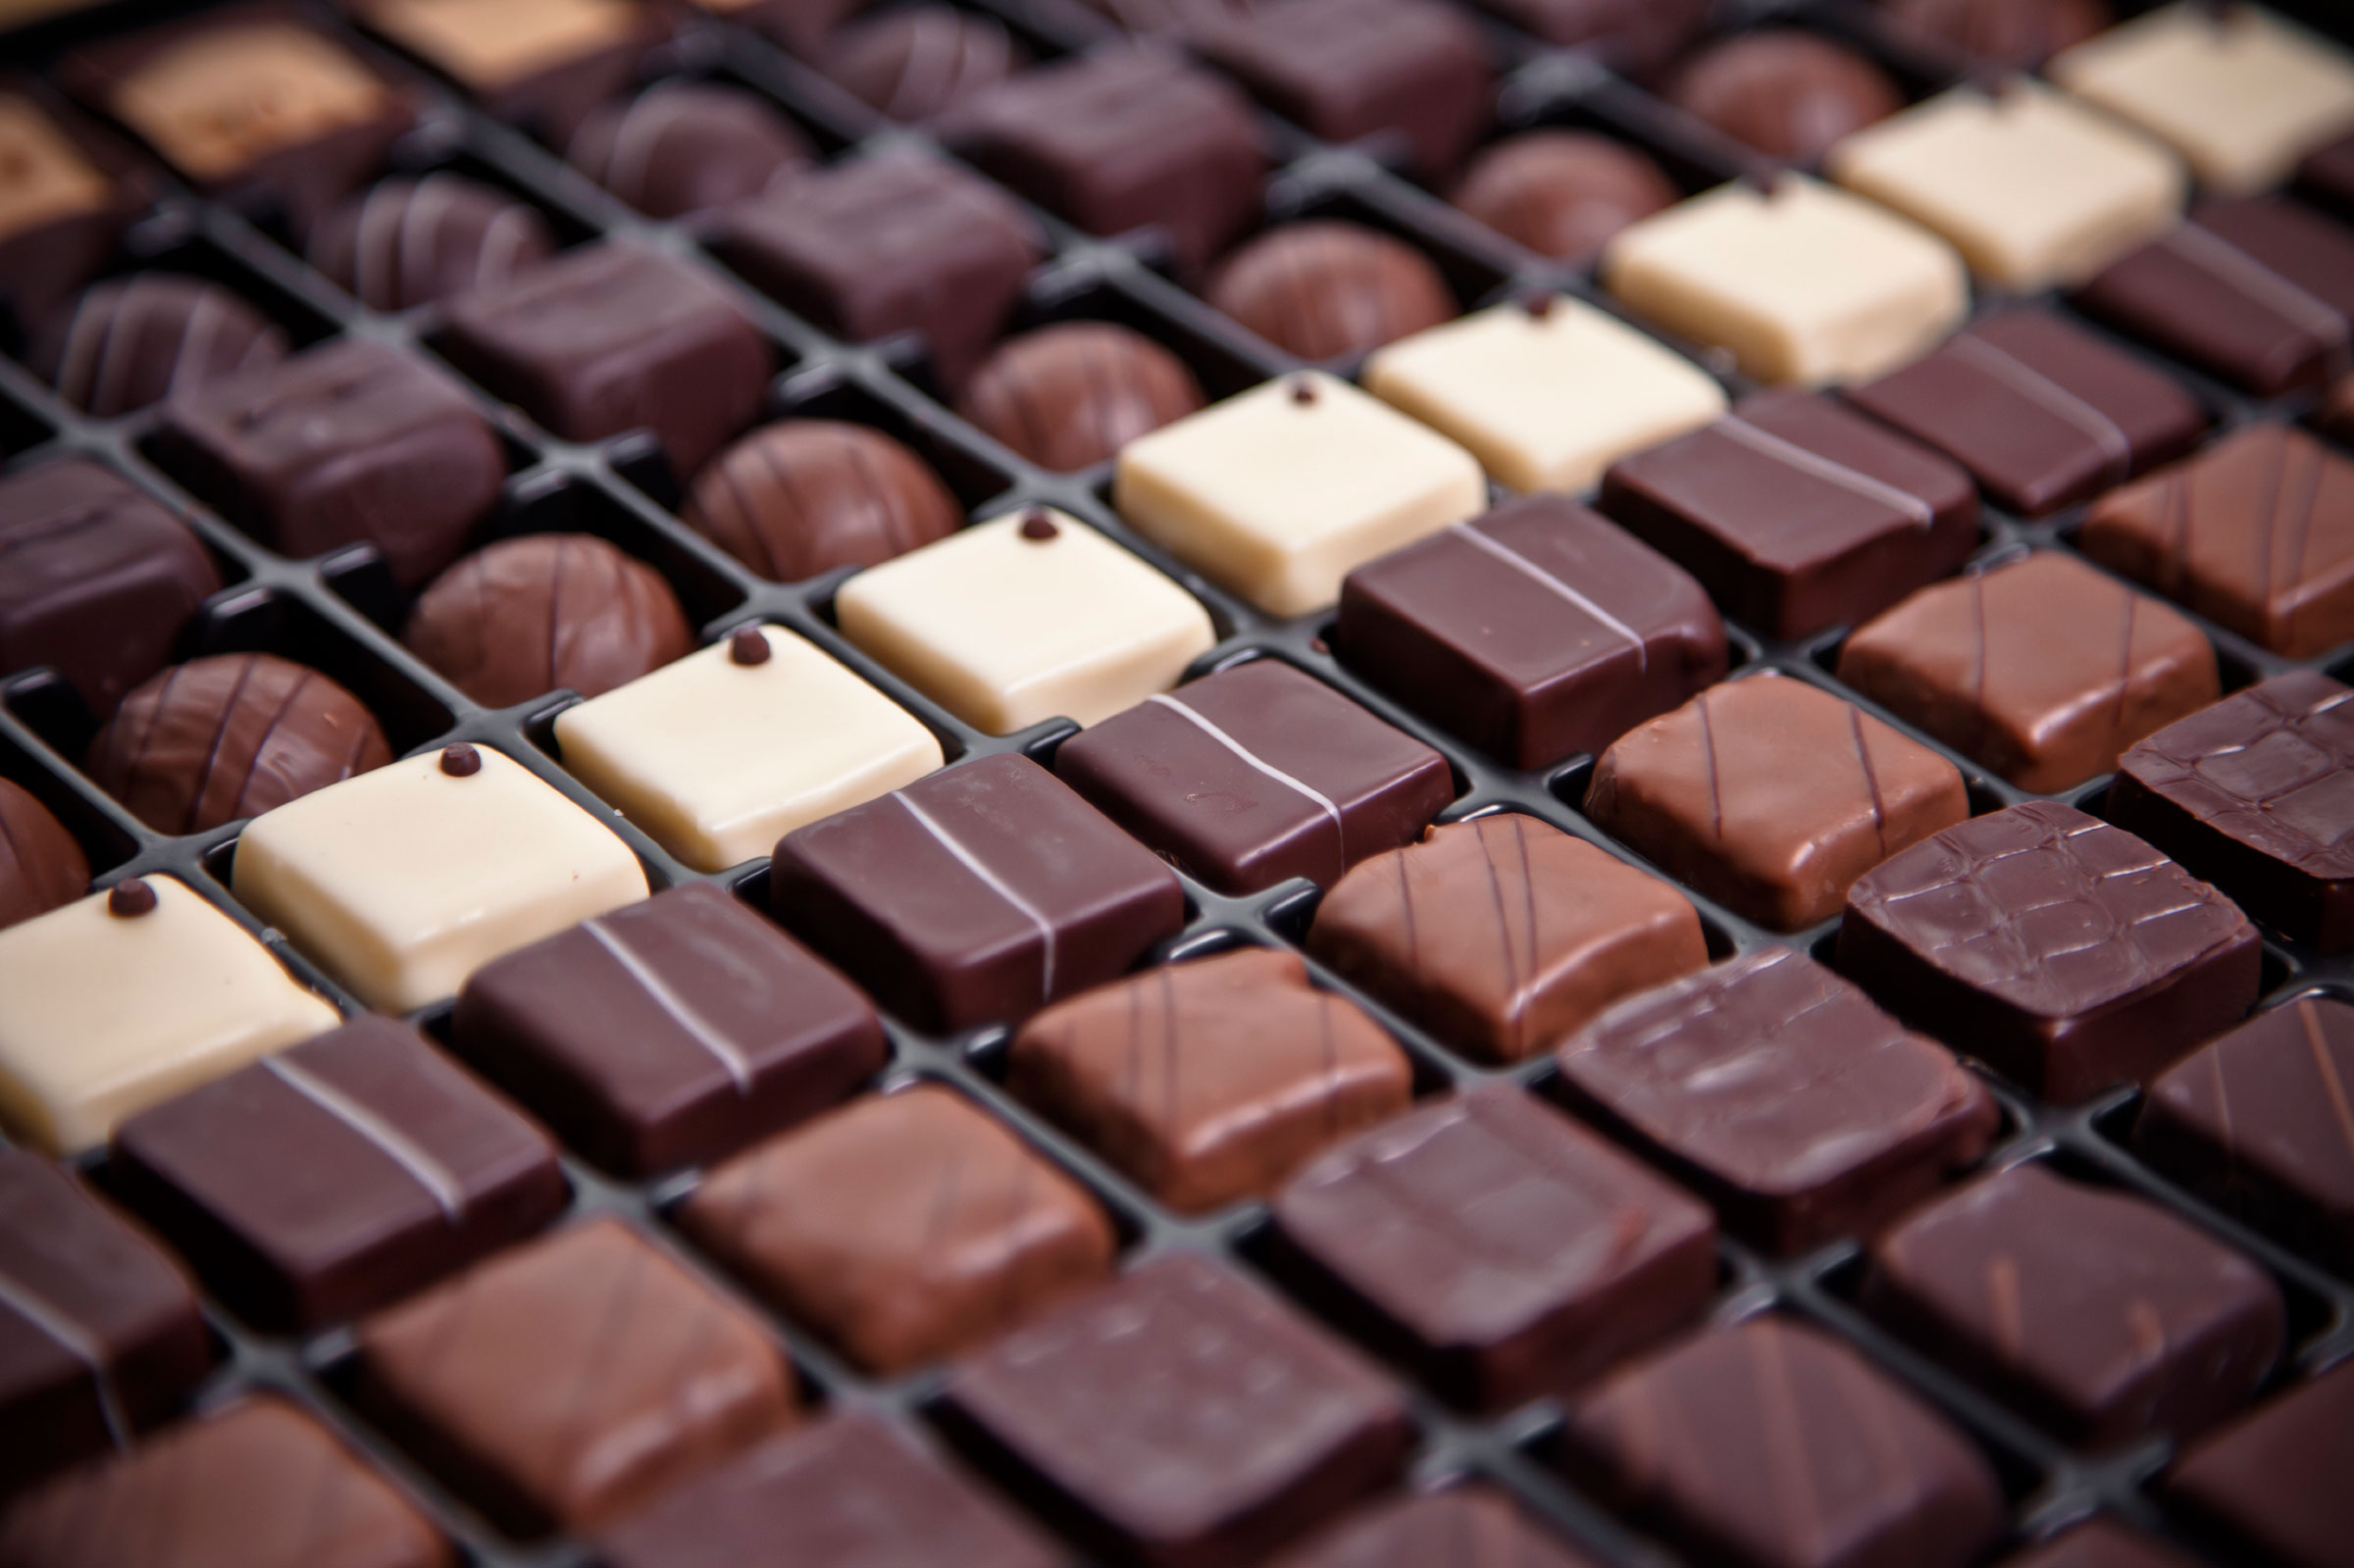 02-secrets-of-professional-chocolate-tasters-lots-of-chocolate